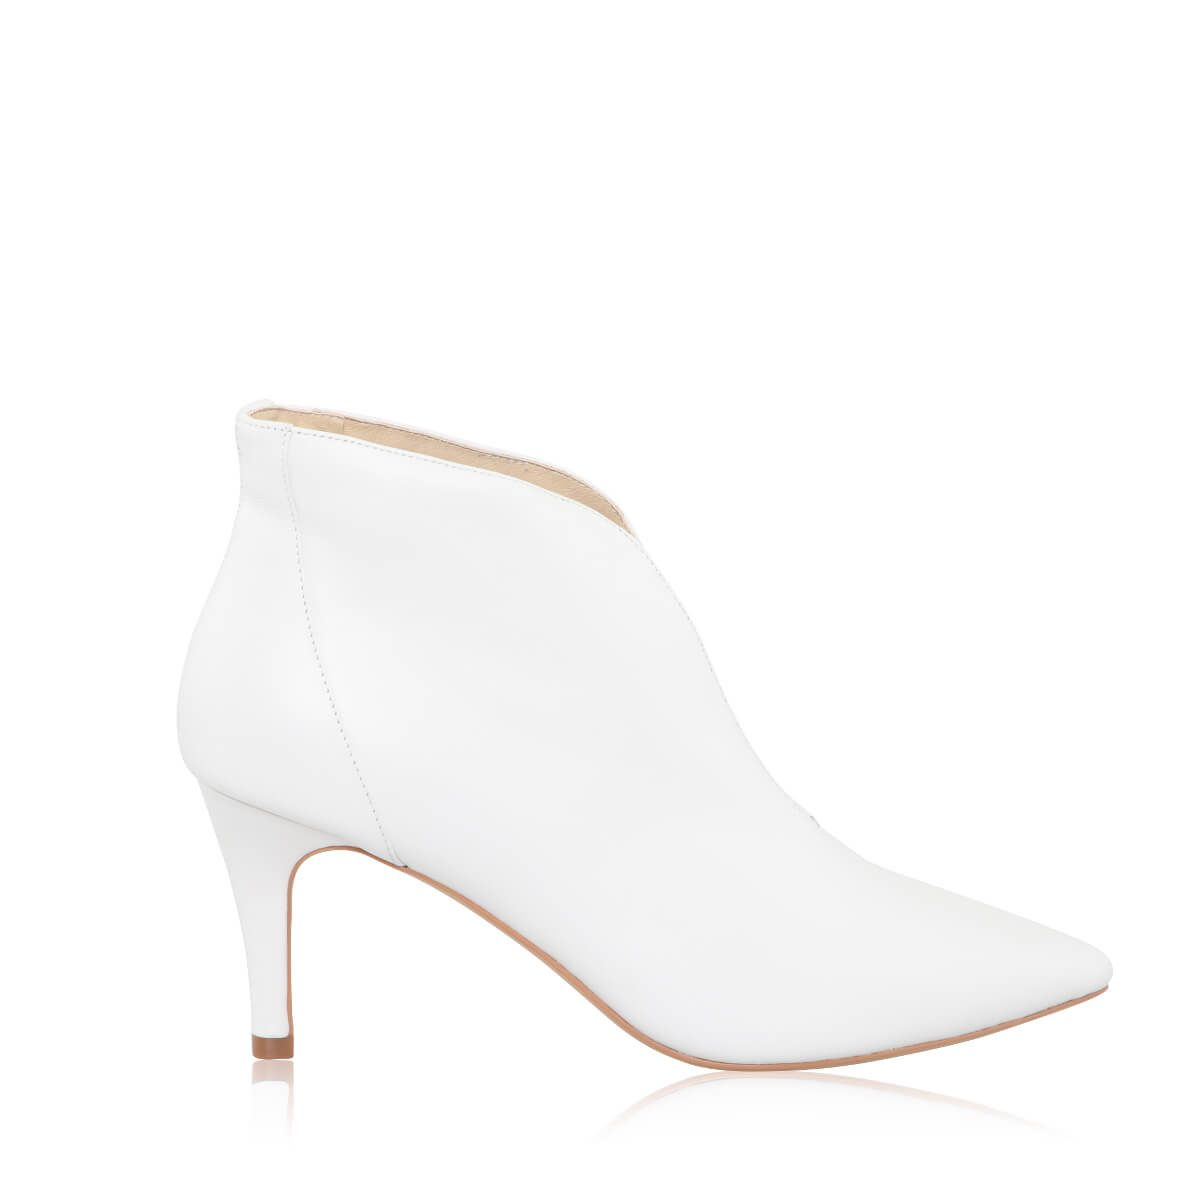 Perfect Bridal Zara Boots - Ivory Leather 1